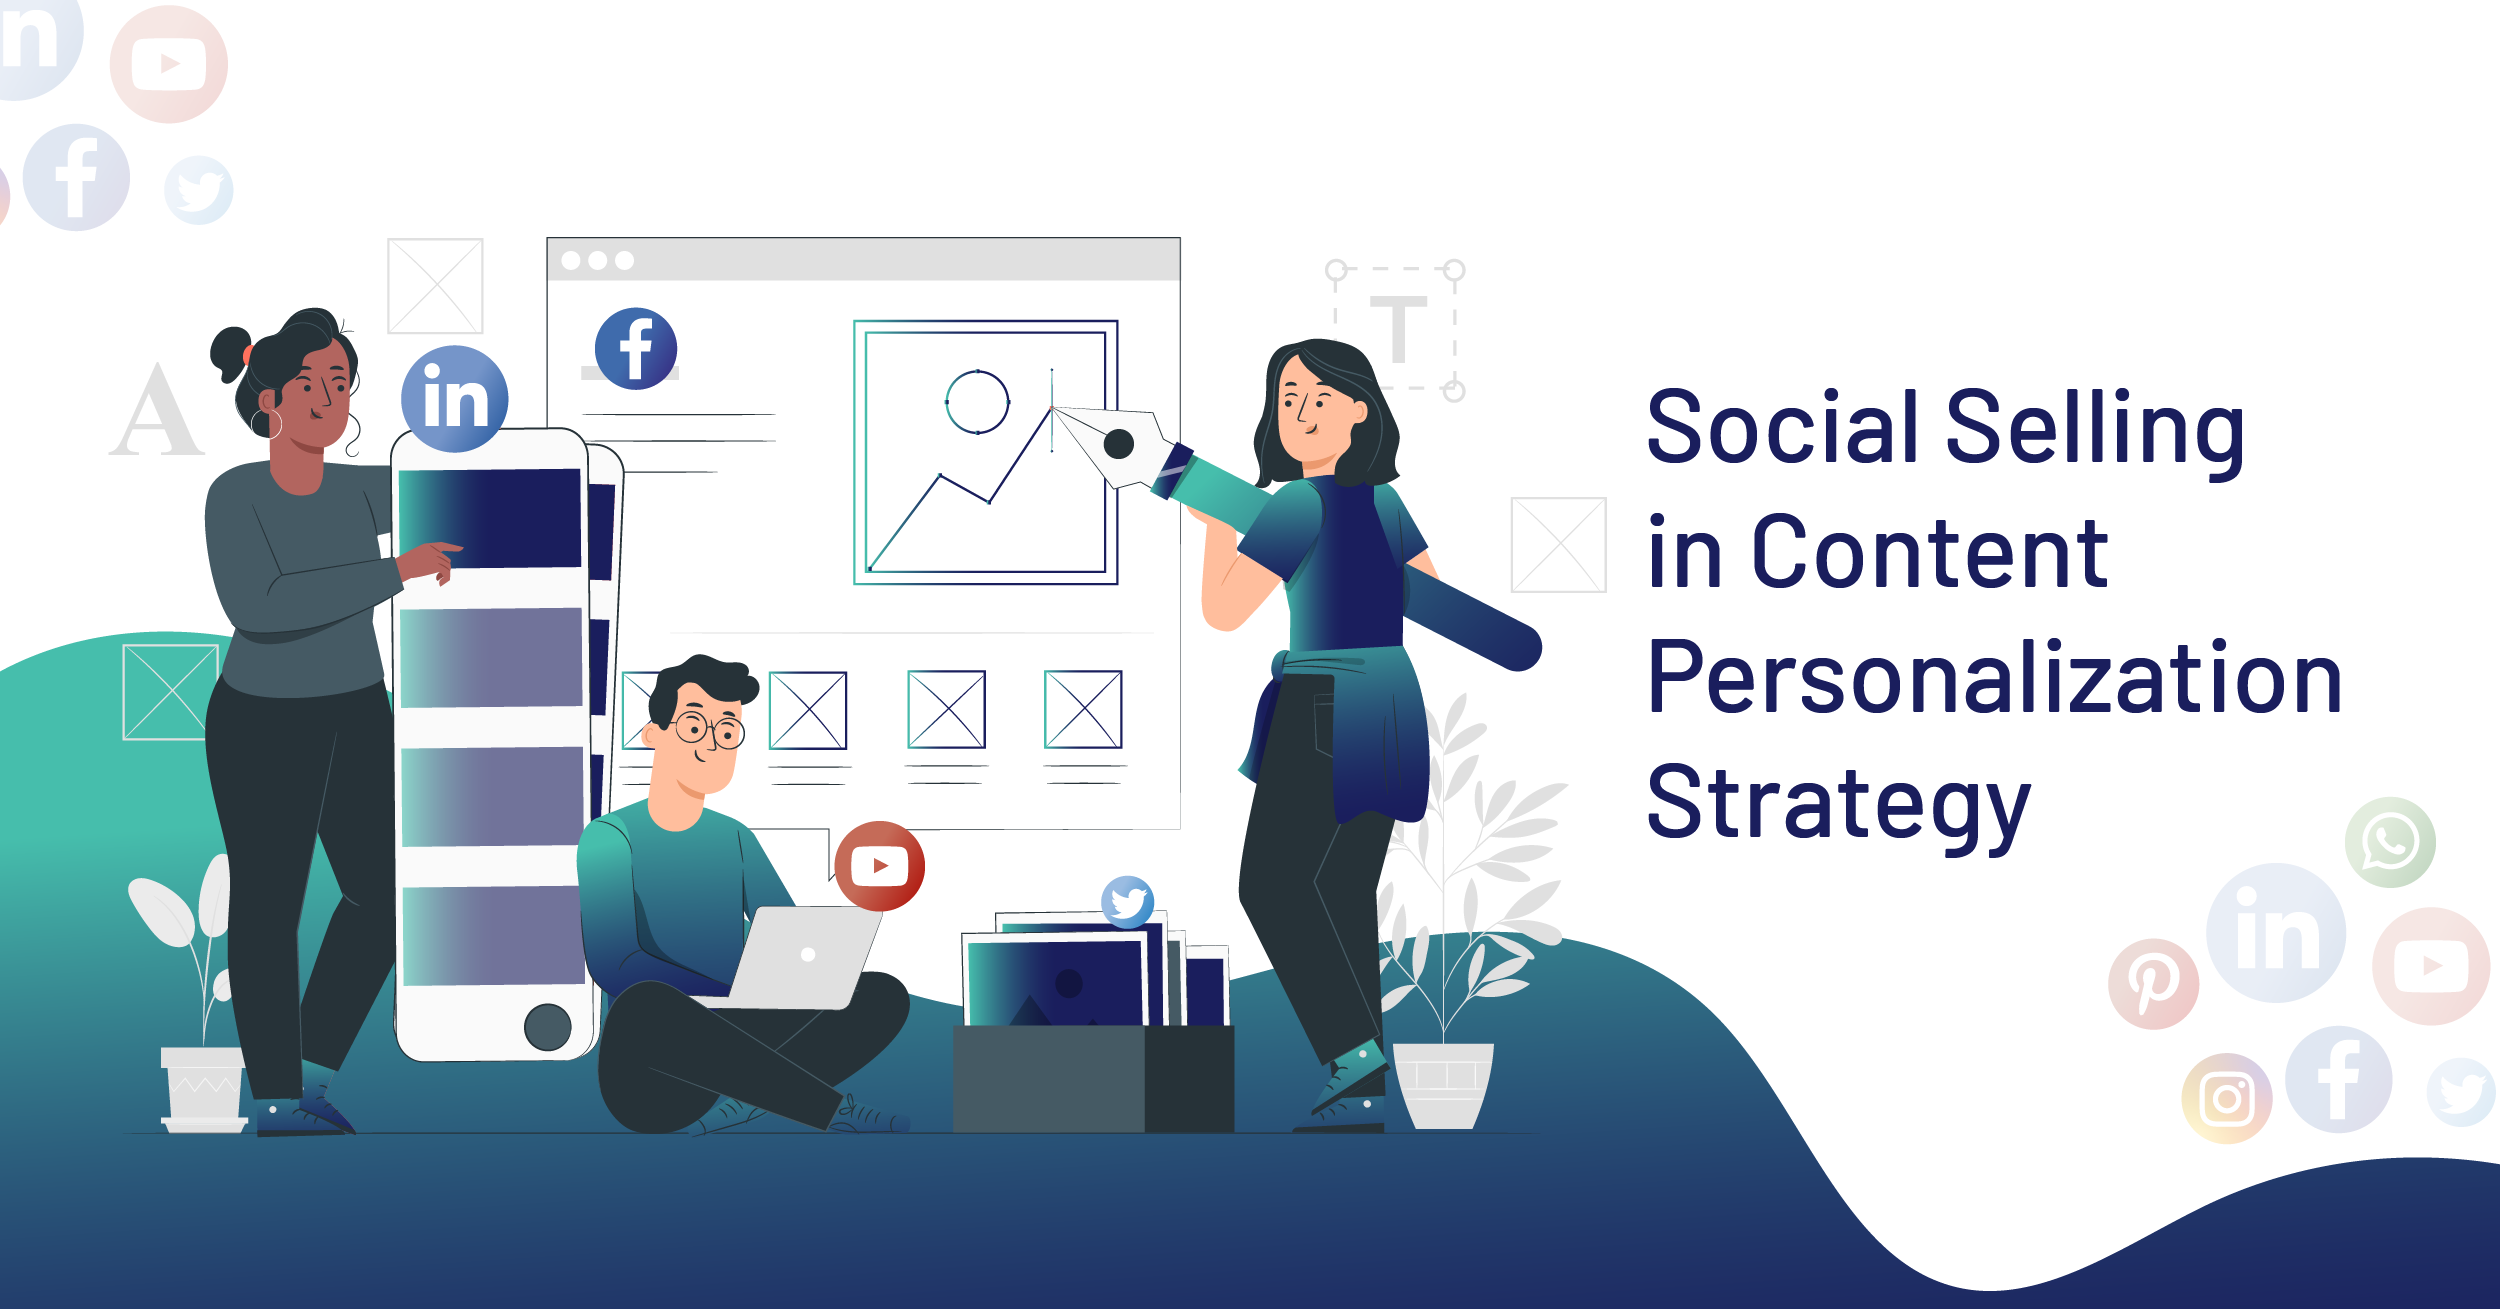 Social Selling in Content Personalization Strategy